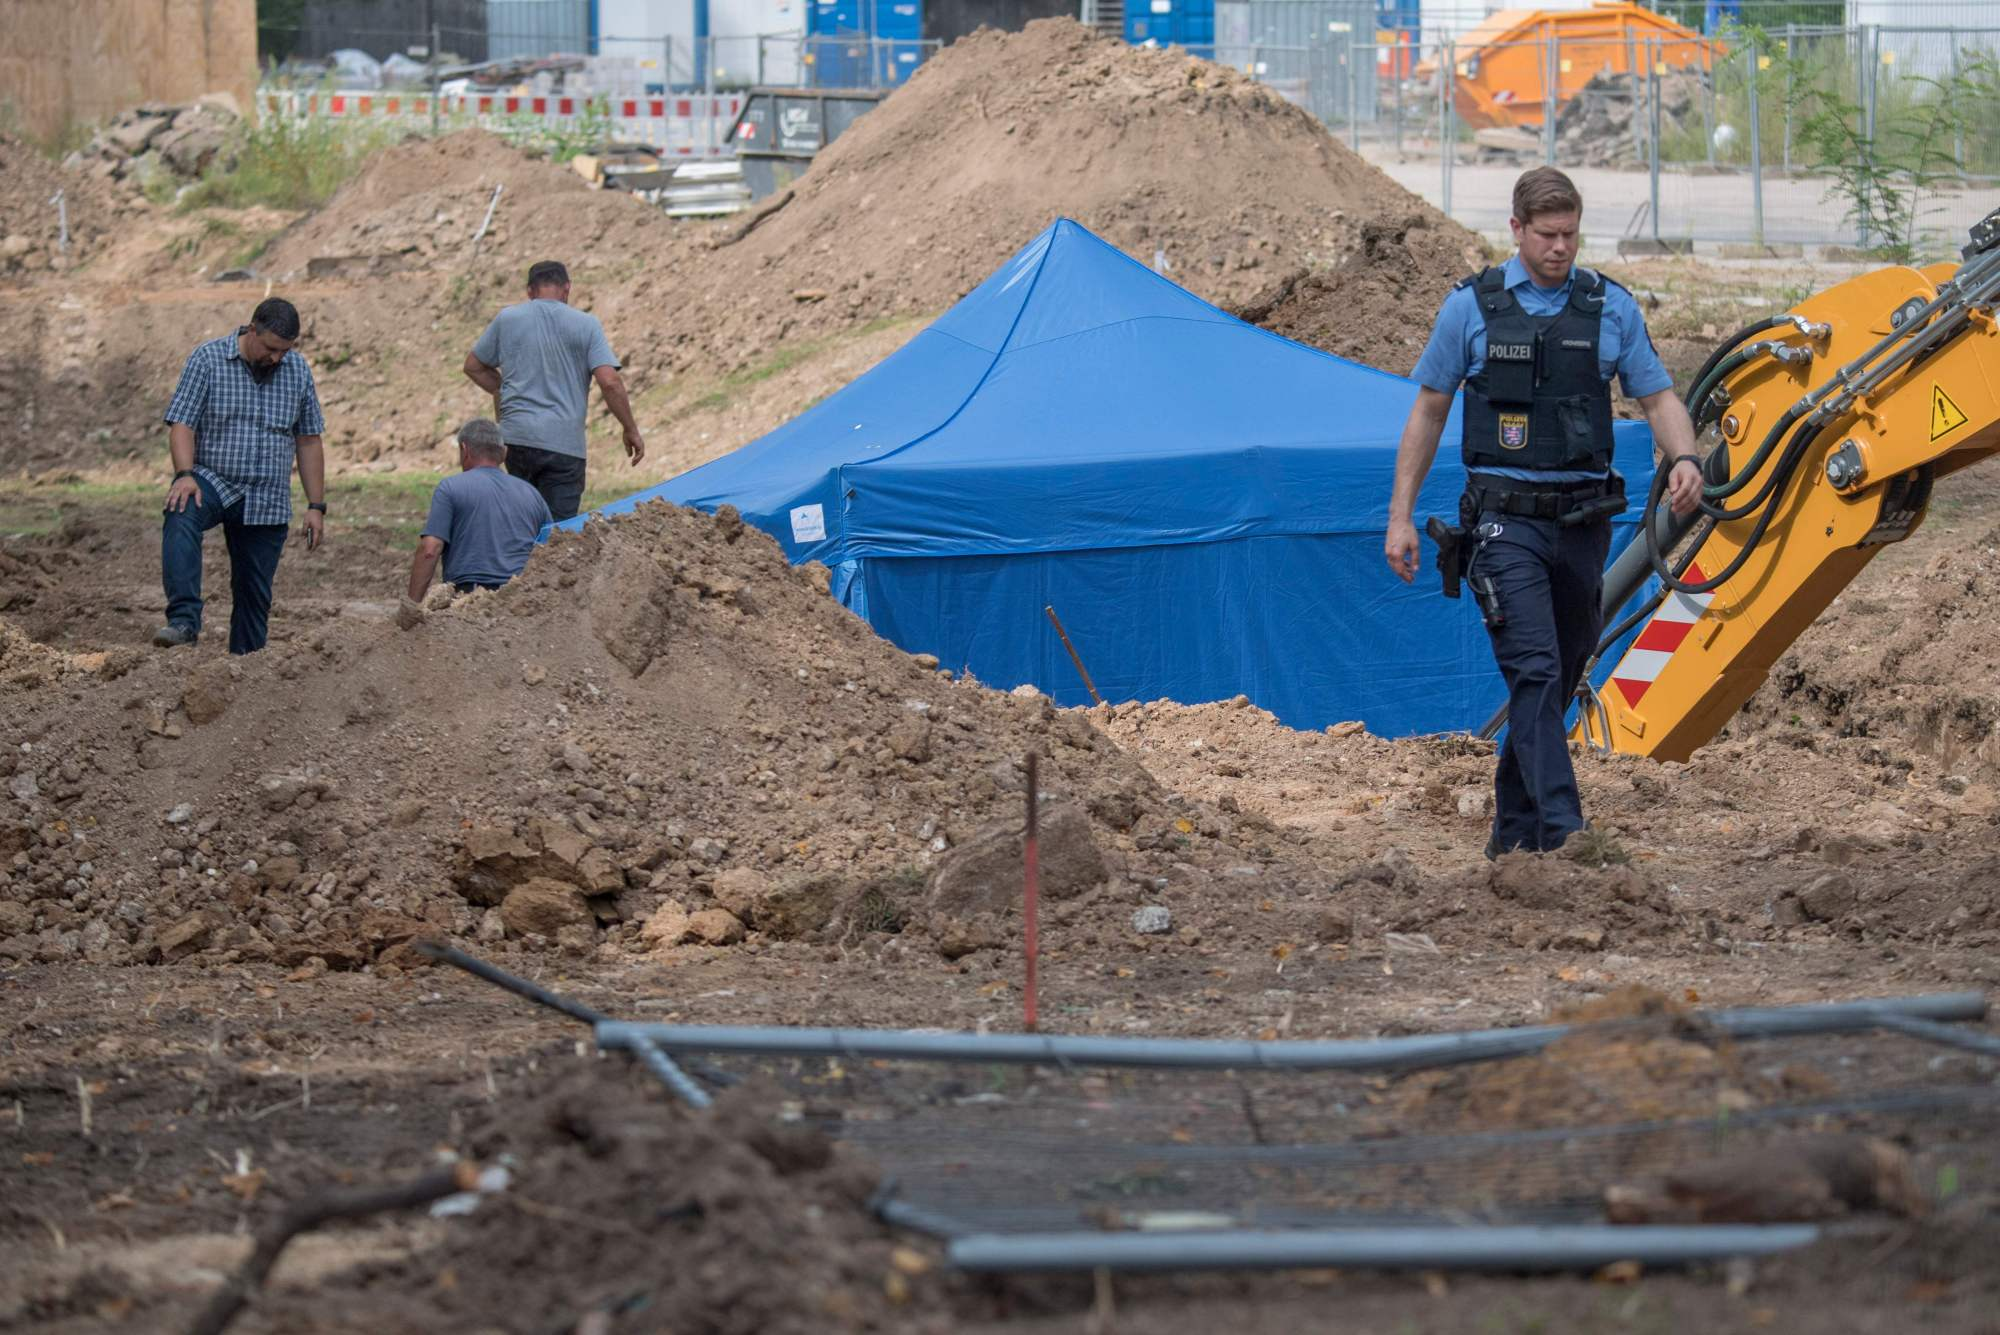 A policeman walks past a blue tent covering a British World War II bomb that was found during construction work on Wednesday in Frankfurt am Main, western Germany. The disposal of the bomb that is planned for Sunday requires the evacuation of around 70,000 people. | BORIS ROESSLER / DPA / VIA AFP-JIJI